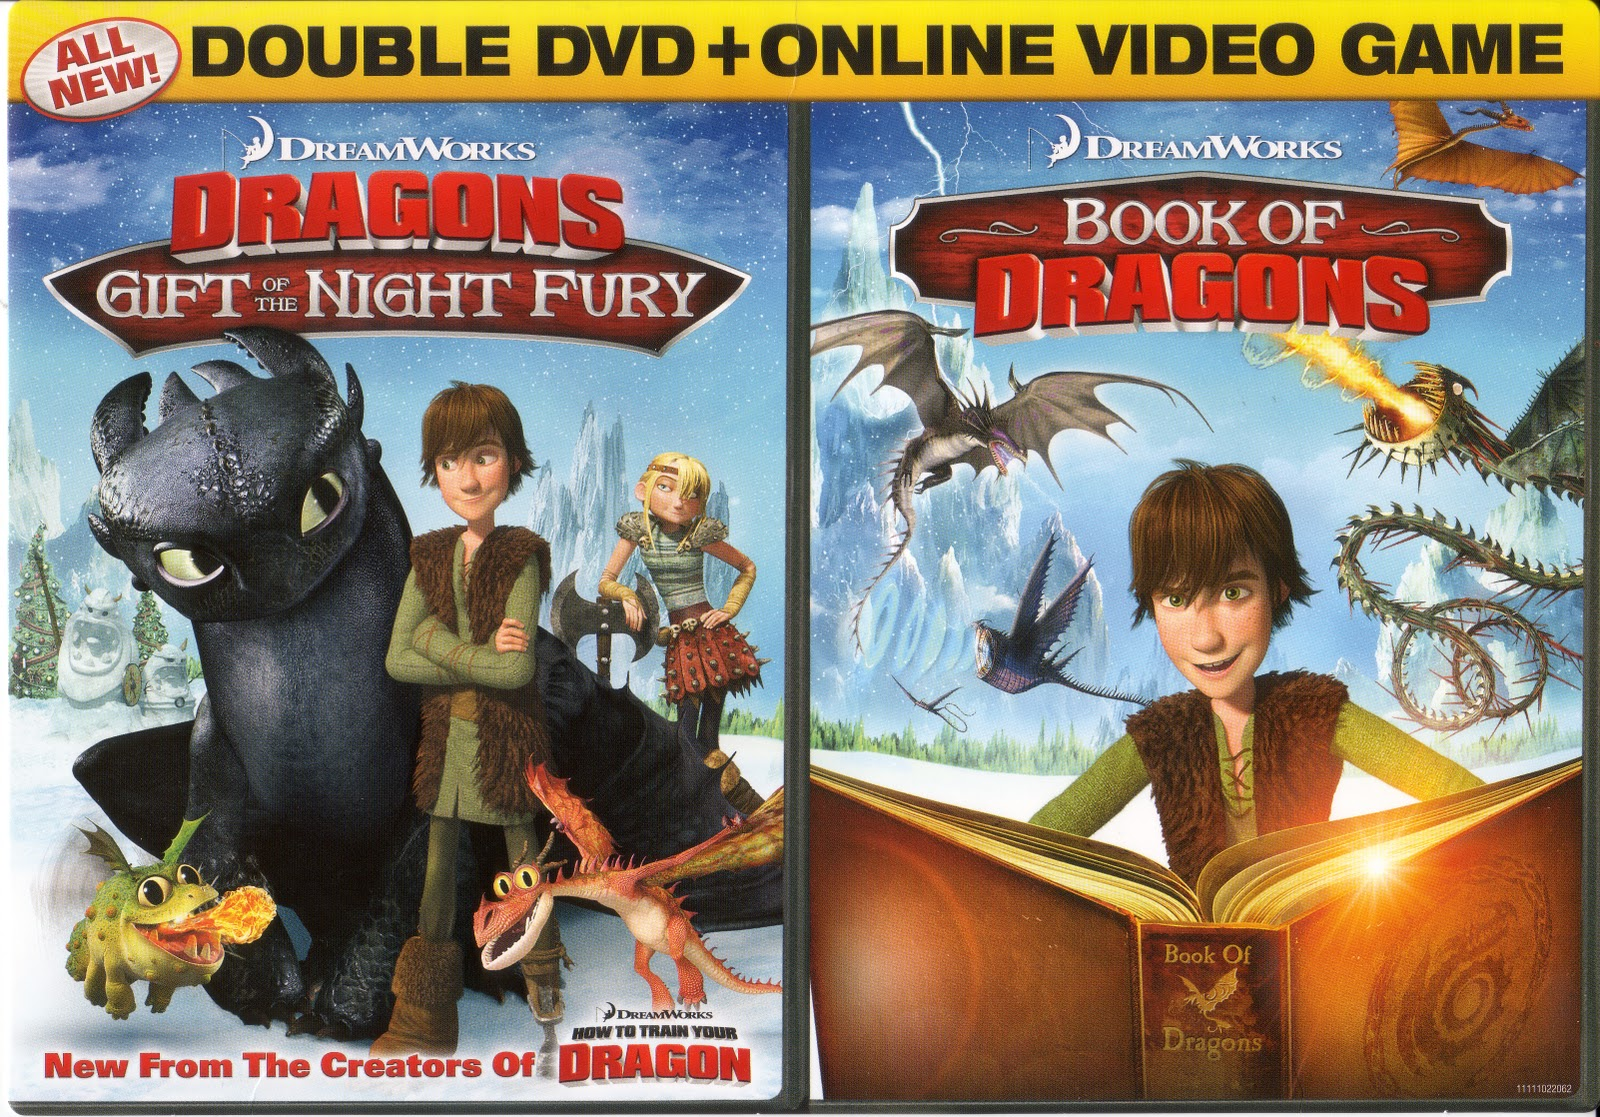 and now for something completely different - How To Train Your Dragon Christmas